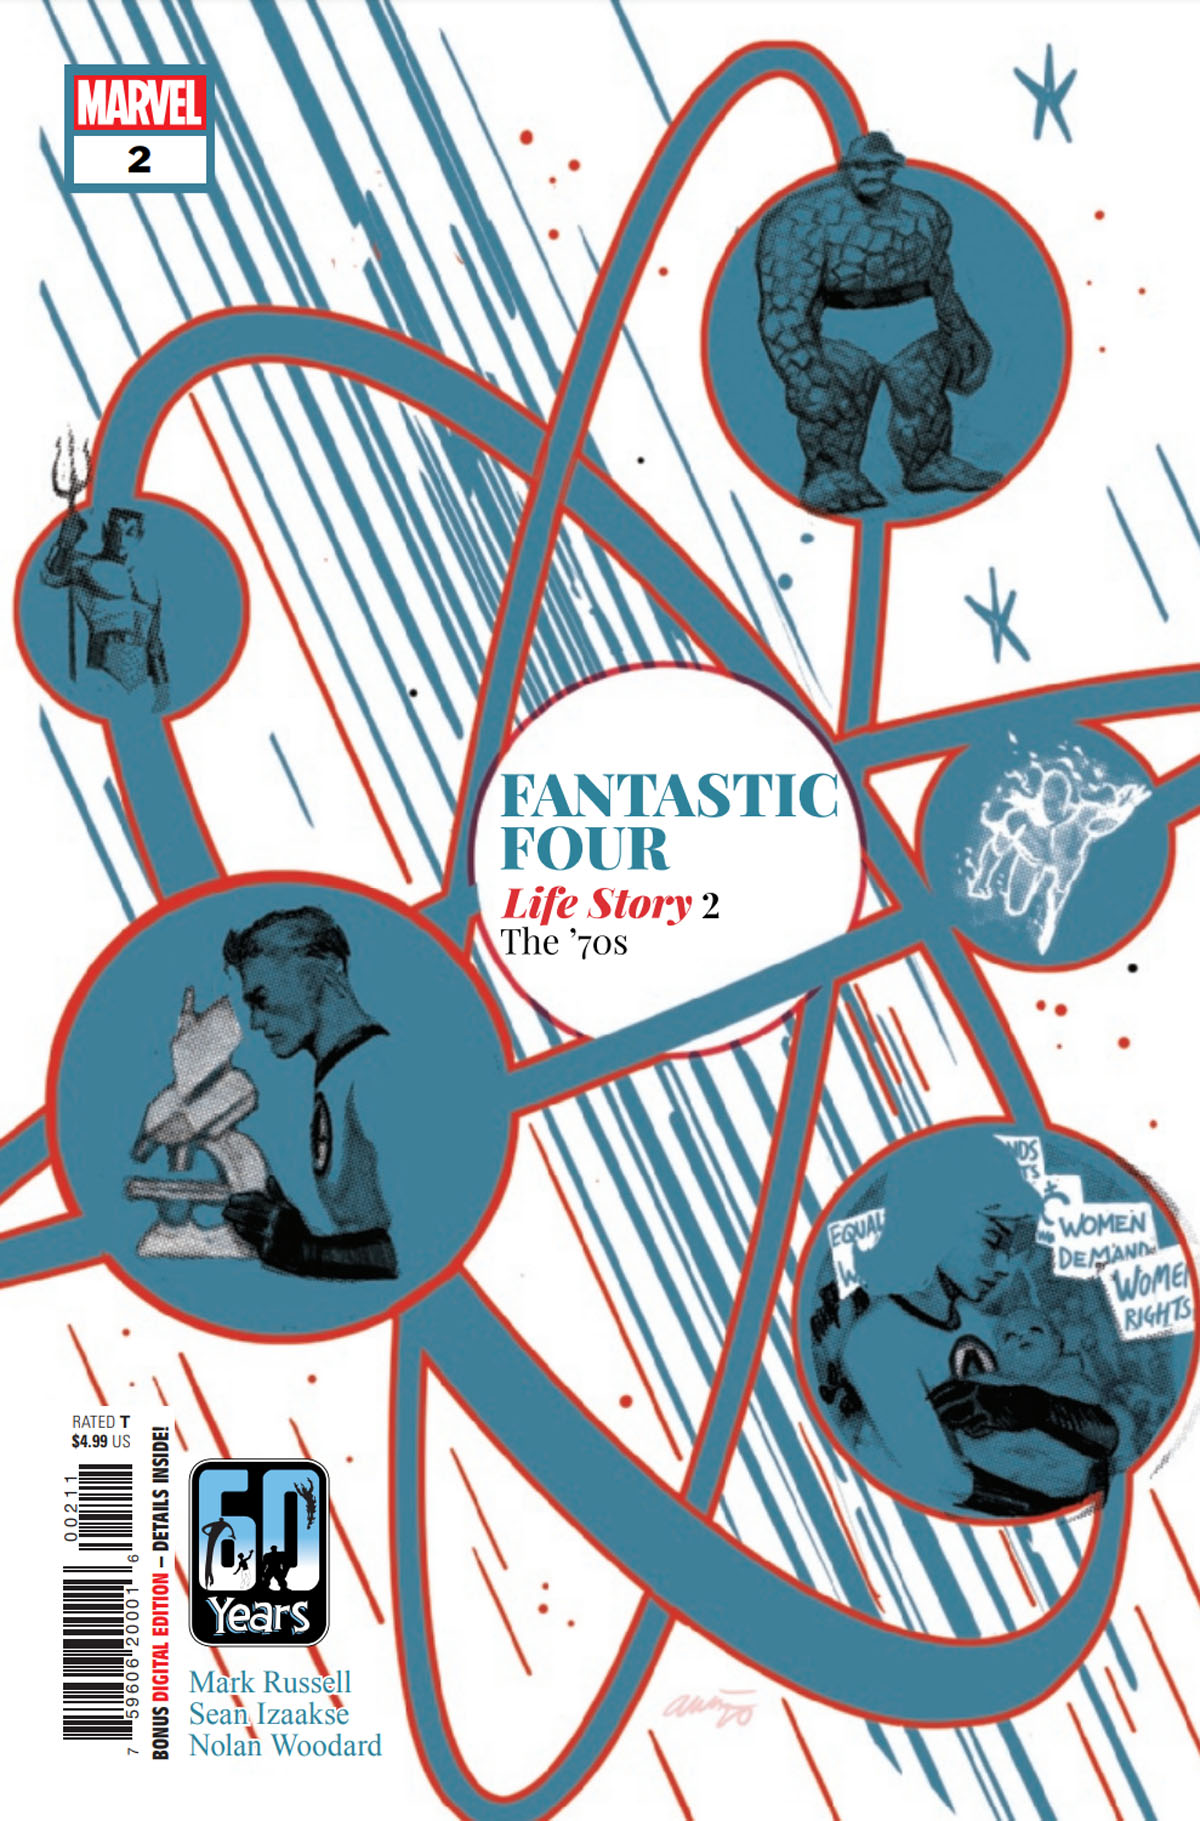 Fantastic Four: Life Story #2 cover